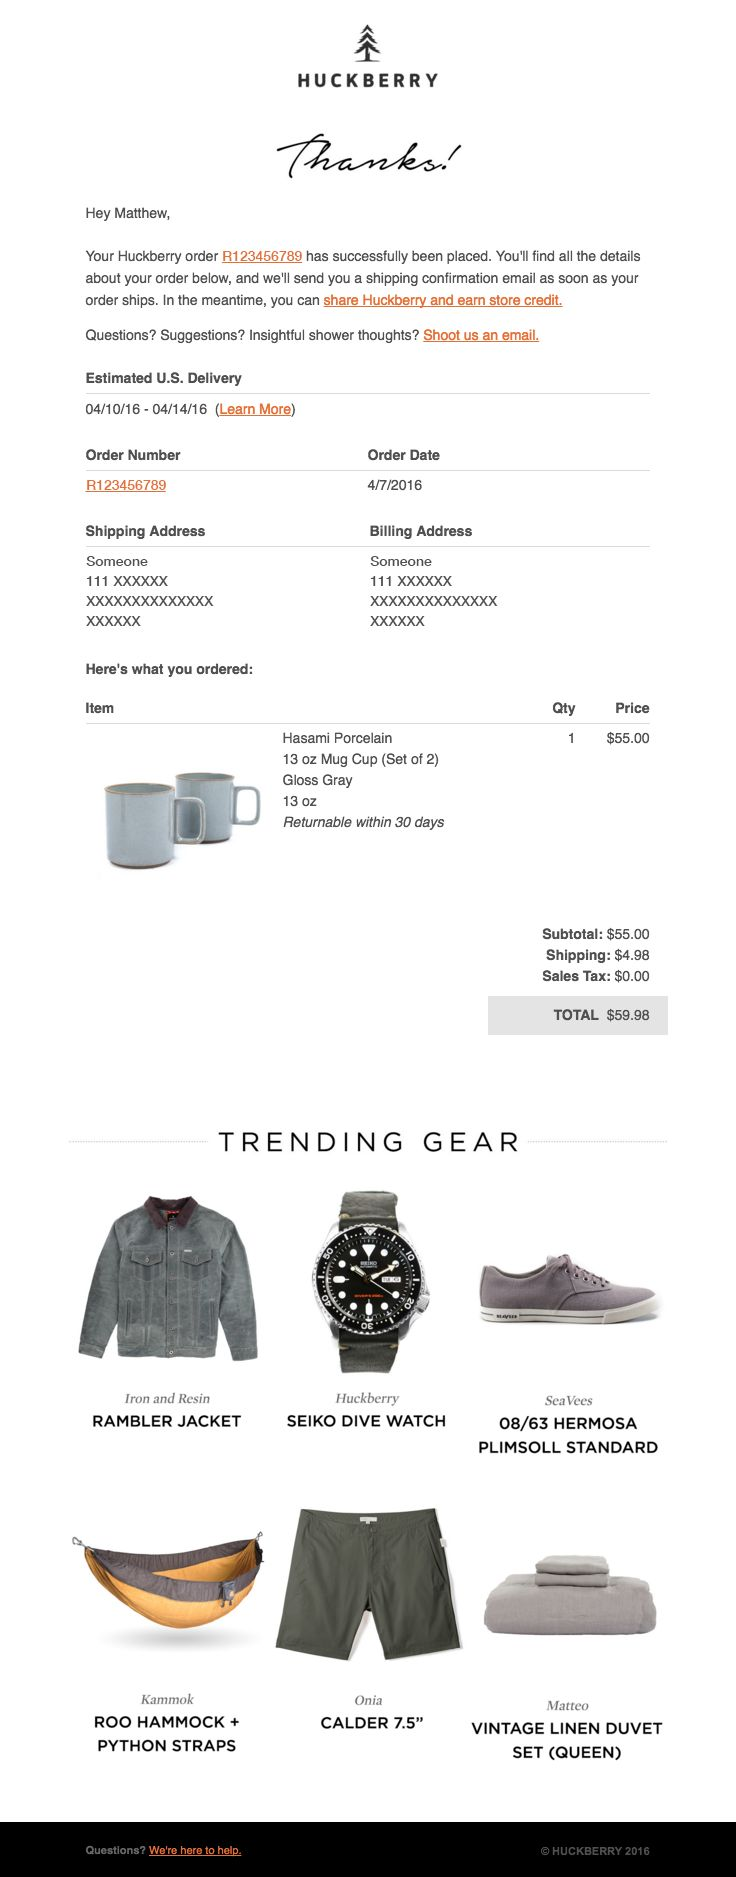 Huckberry sent this email with the subject line: Your Huckberry Order R123456789 – Details Inside - Read about this email and find more transactional emails at ReallyGoodEmails.com #ecommerce #receipt #transactional